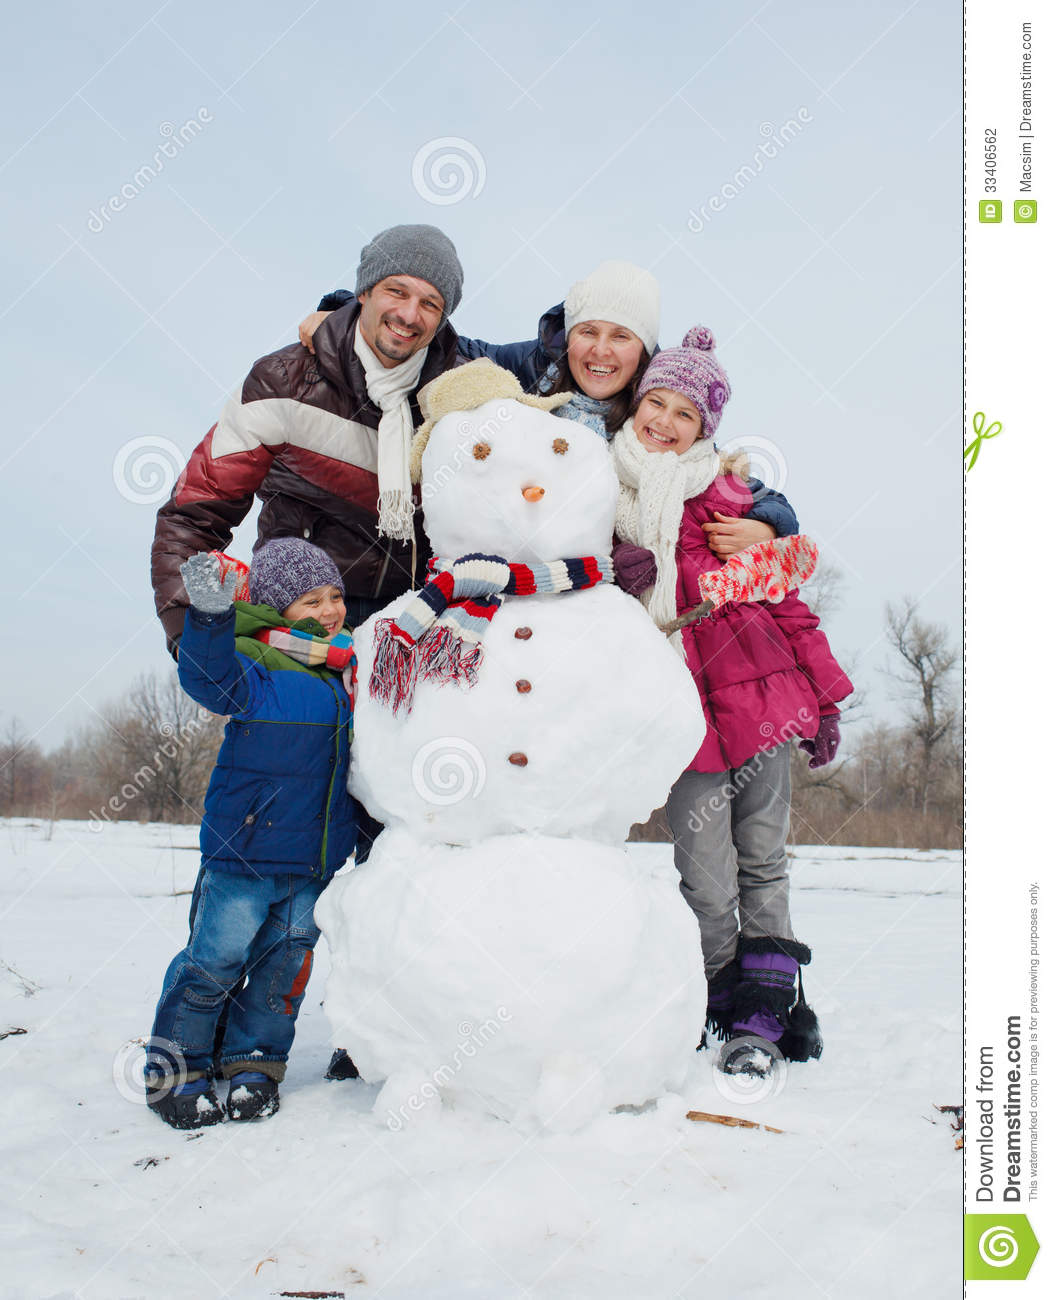 Family Make A Snowman Stock Photo Image Of Cute